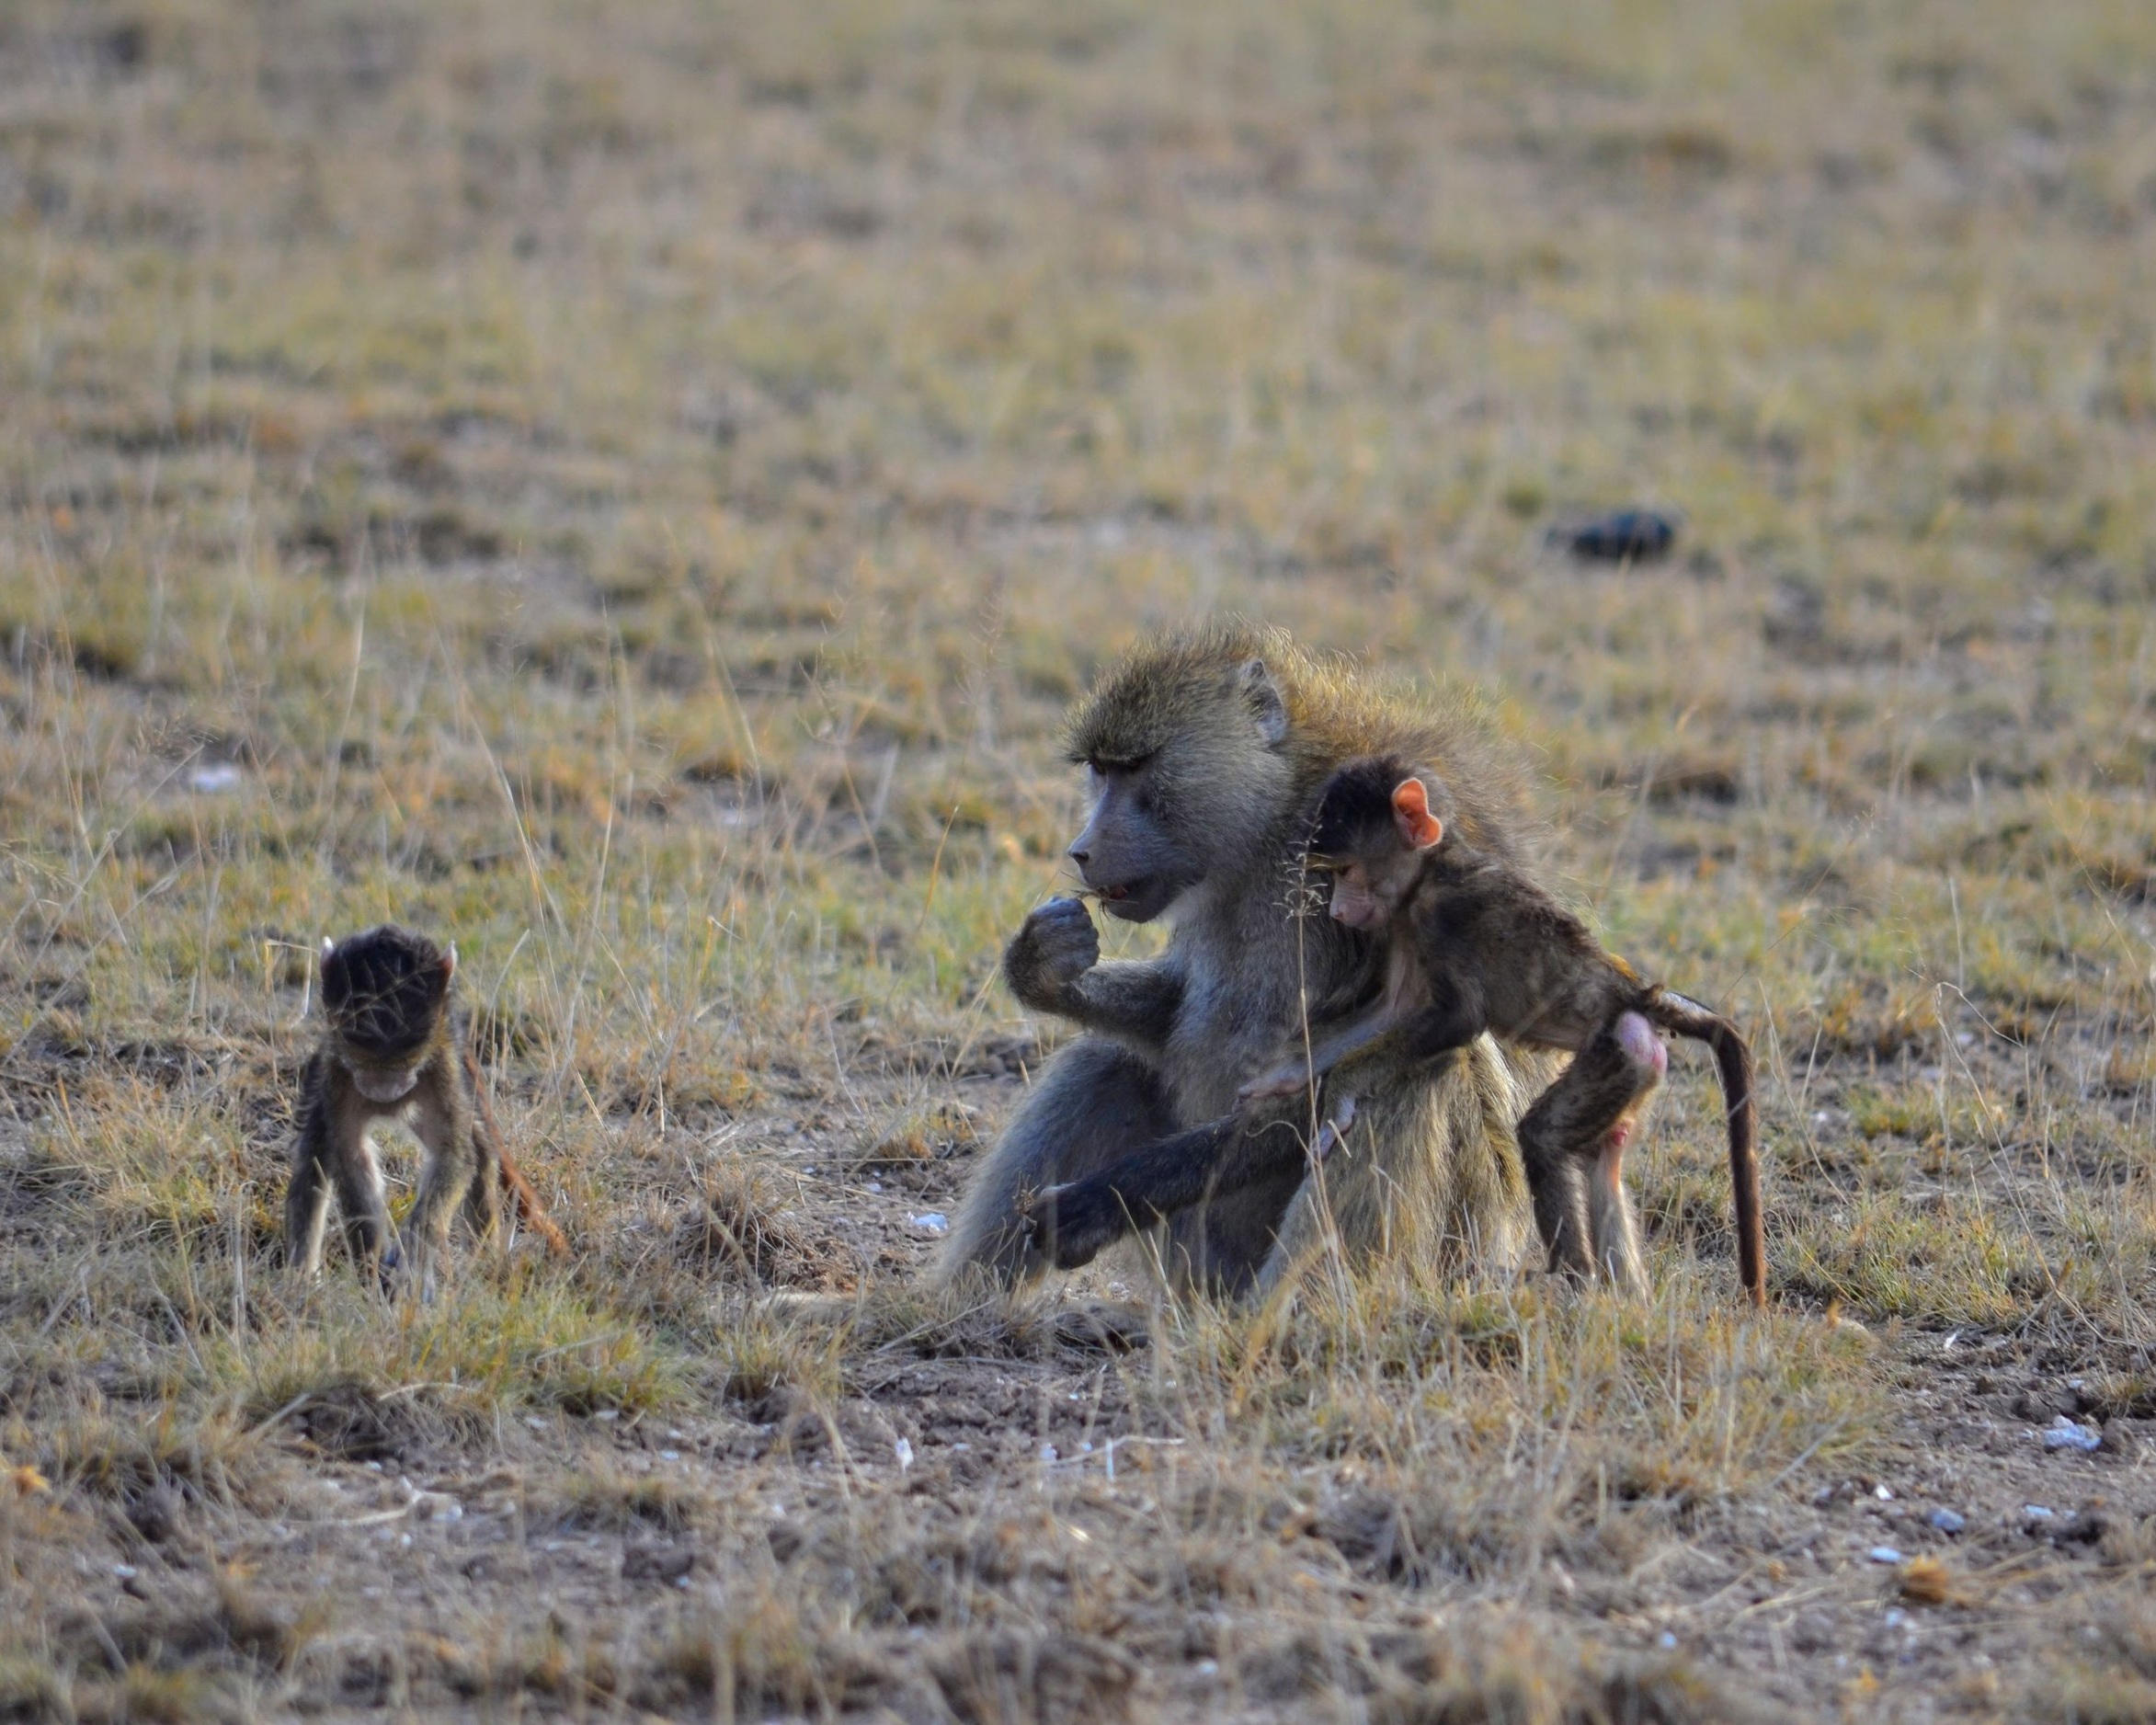 A female baboon eating grass on the savannah with two juvenile baboons.